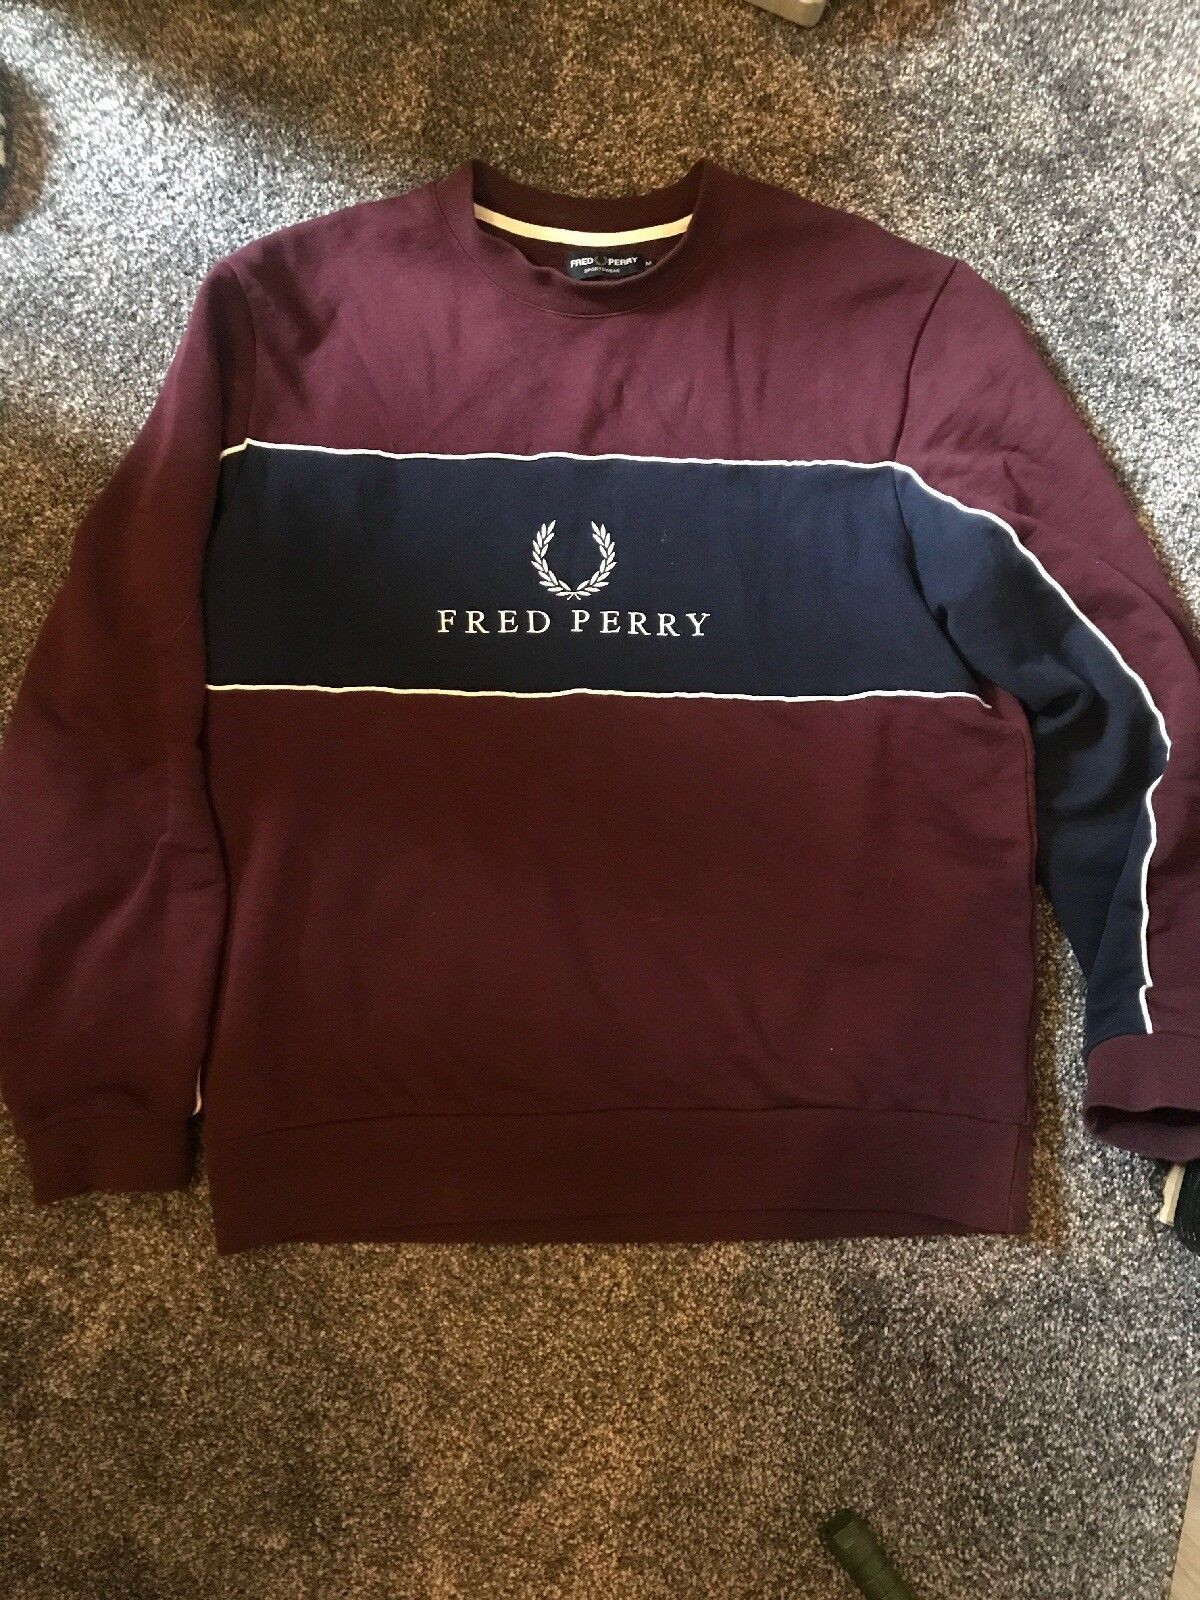 Fred Perry Original Burgandy And Navy Sportswear Jumper